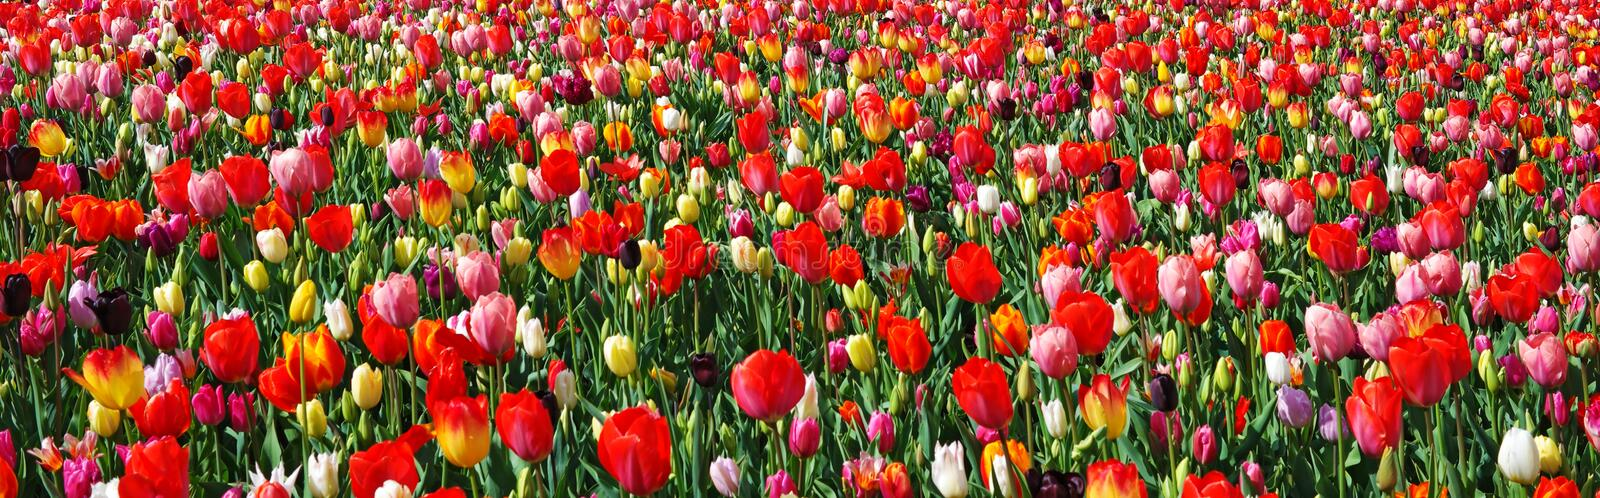 Panorama of blooming colorful tulips, Netherlands royalty free stock photography